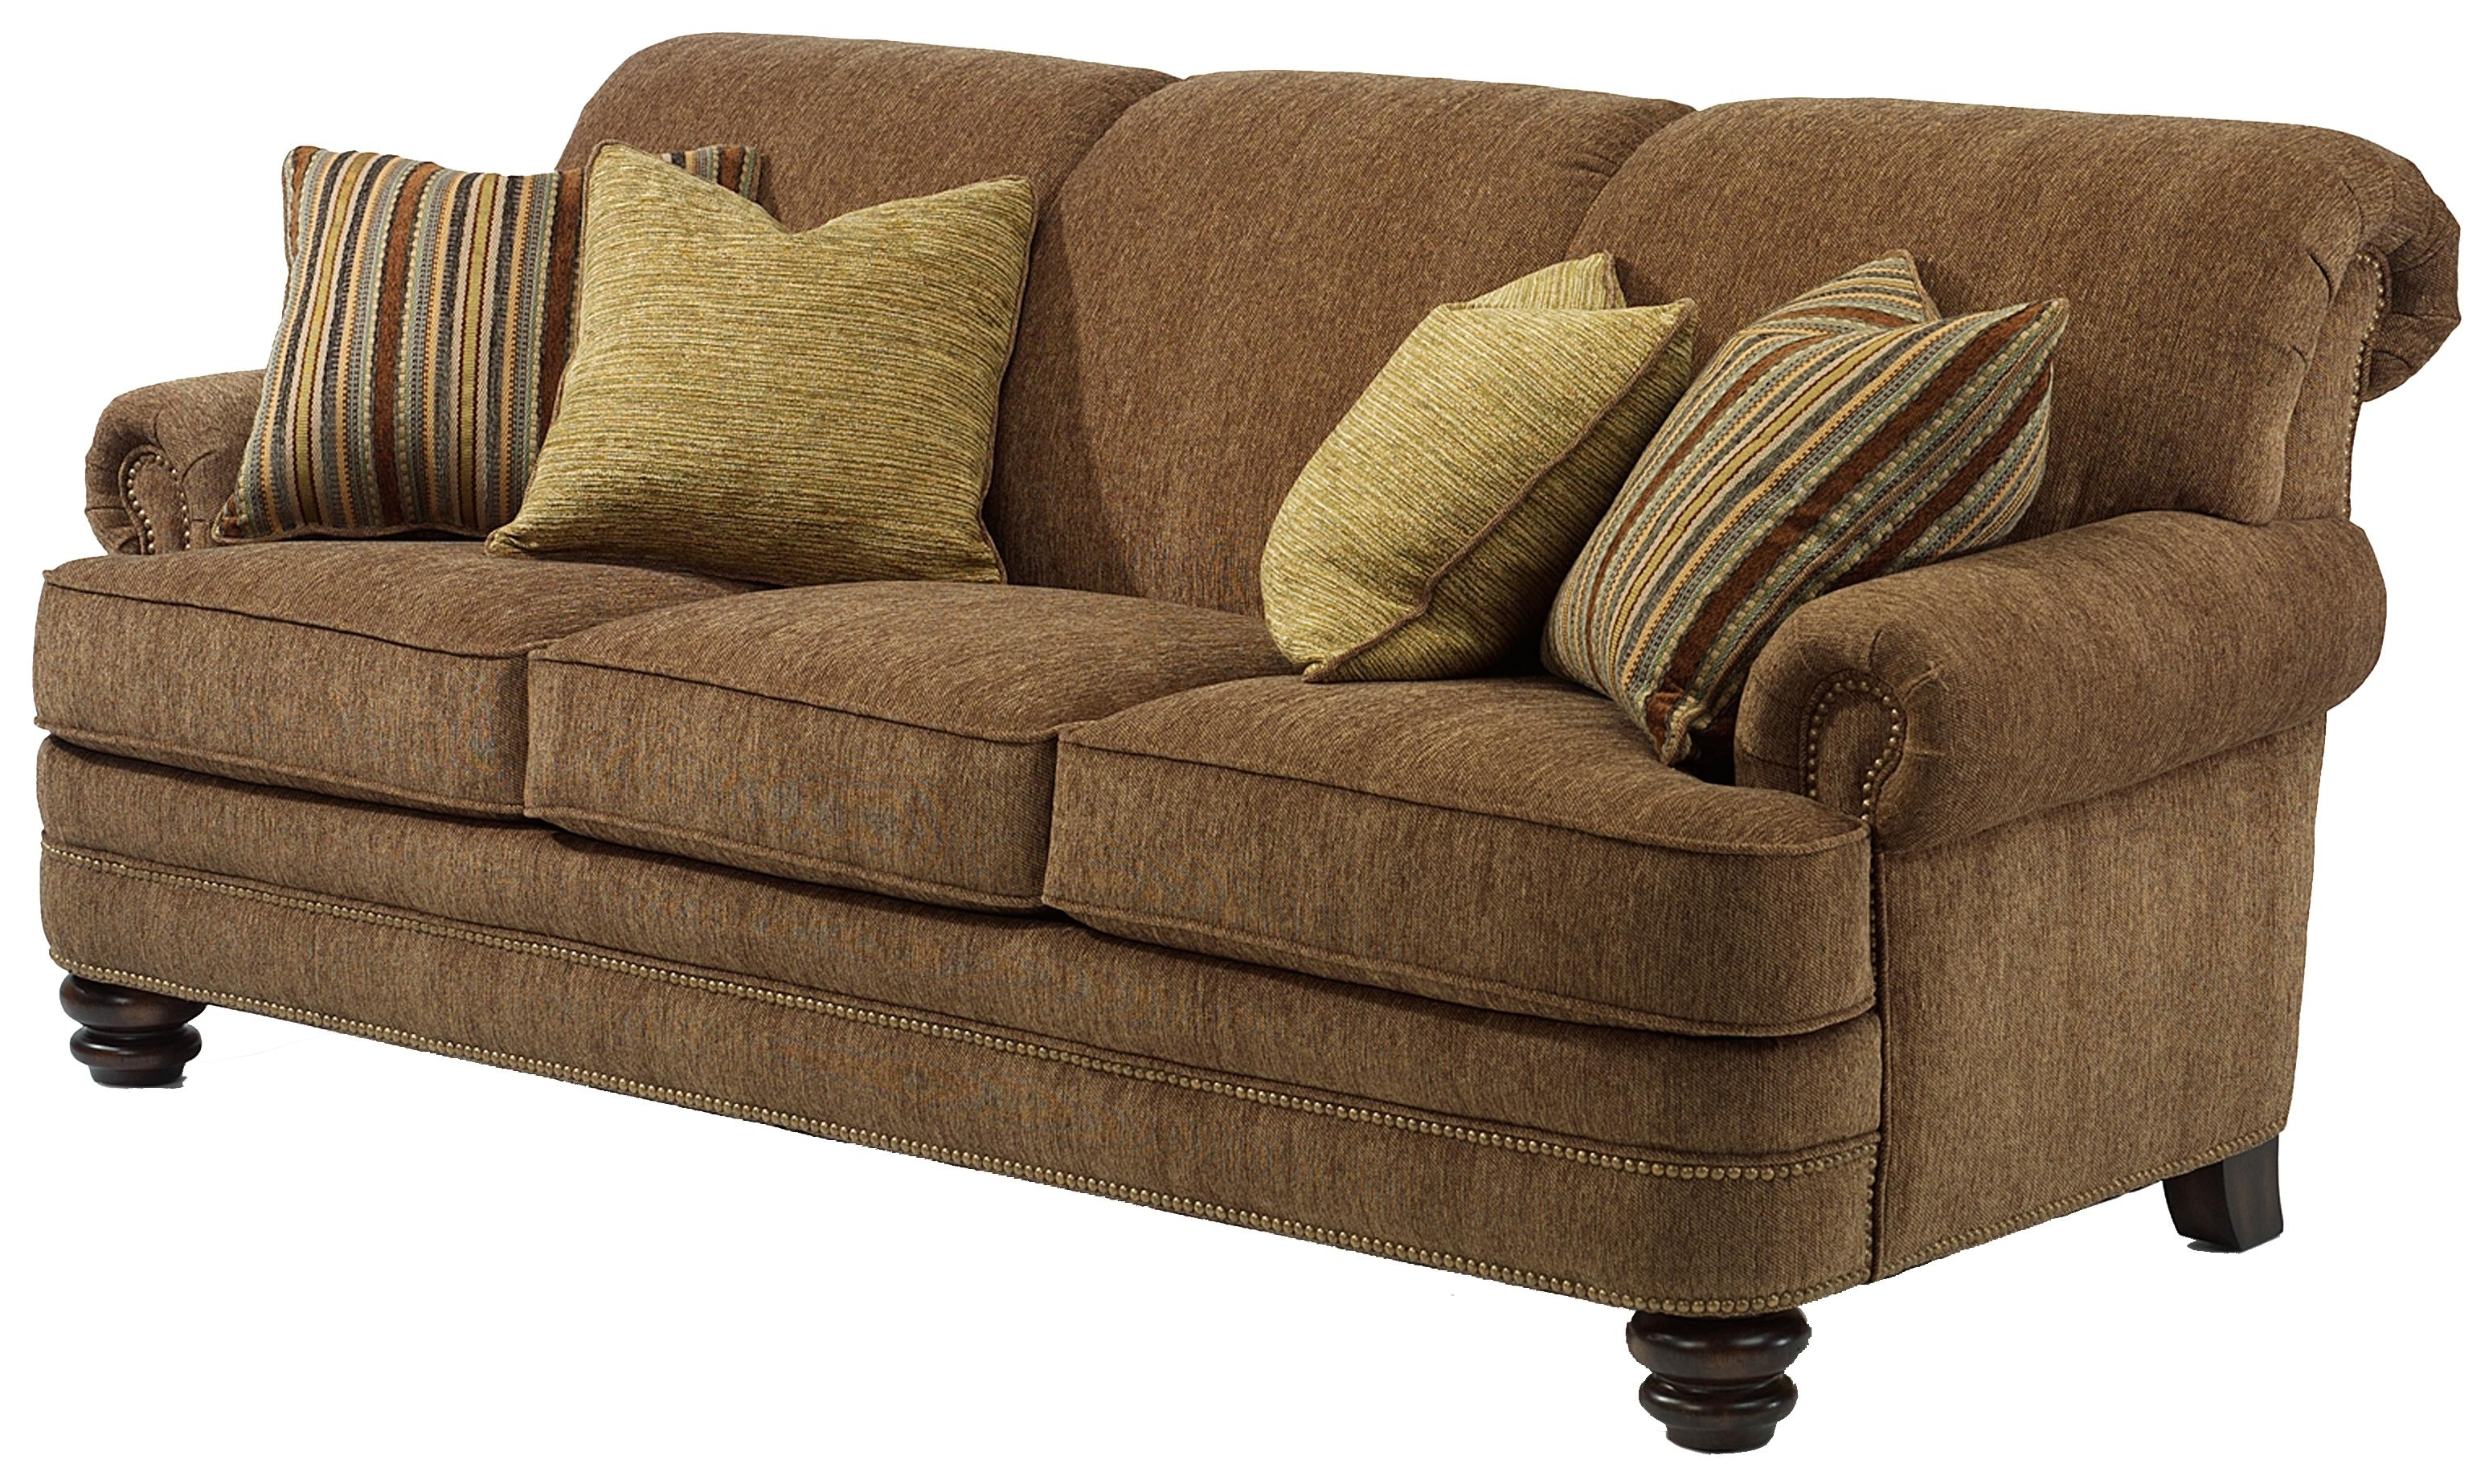 Newest Flexsteel Bay Bridge Traditional Rolled Back Sofa – Ahfa – Sofa Inside Scarborough Sectional Sofas (View 11 of 20)